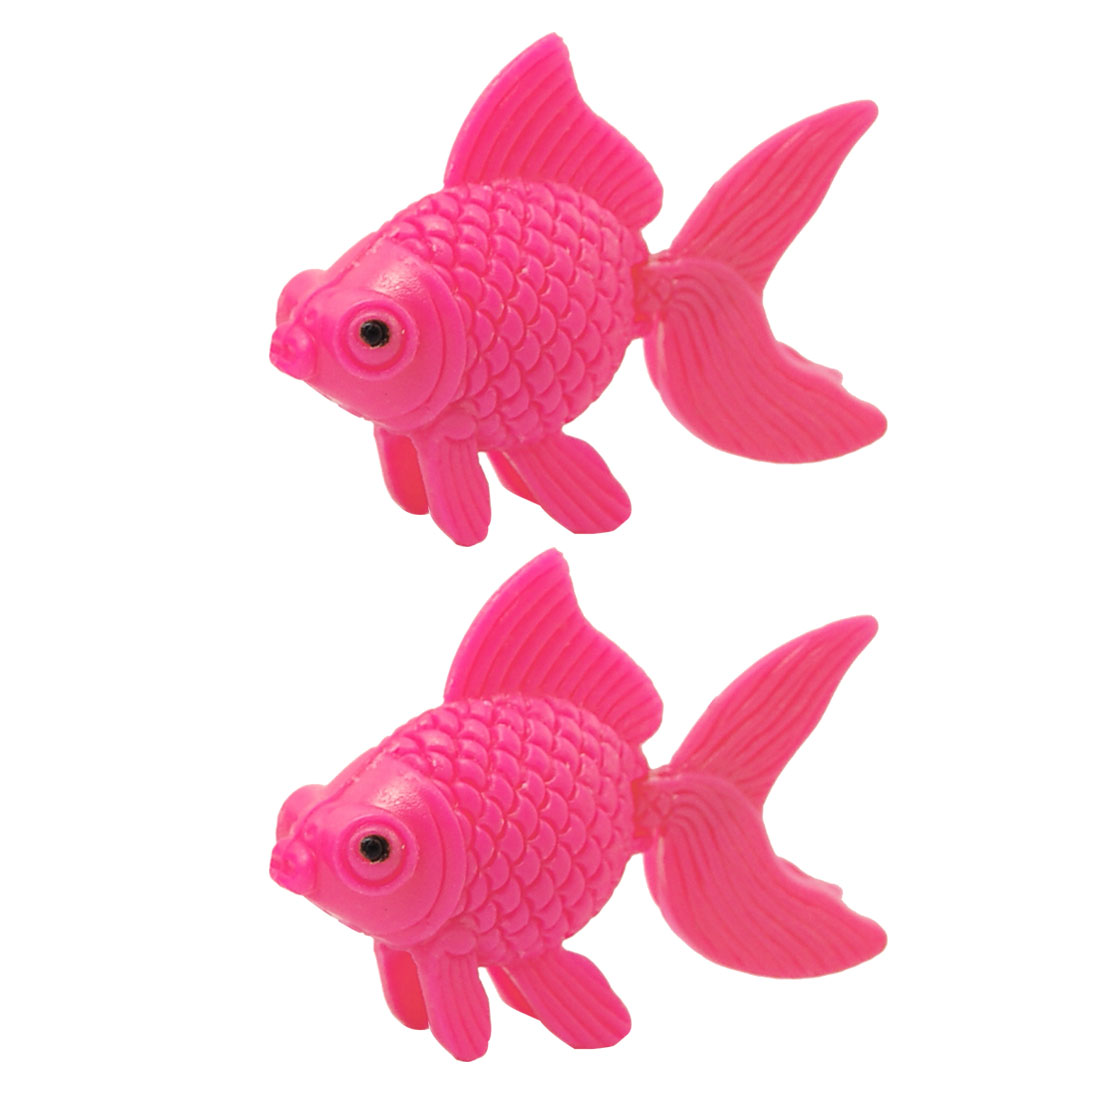 2 Pcs Pink Plastic Floating Goldfish Decor for Aquarium Tank